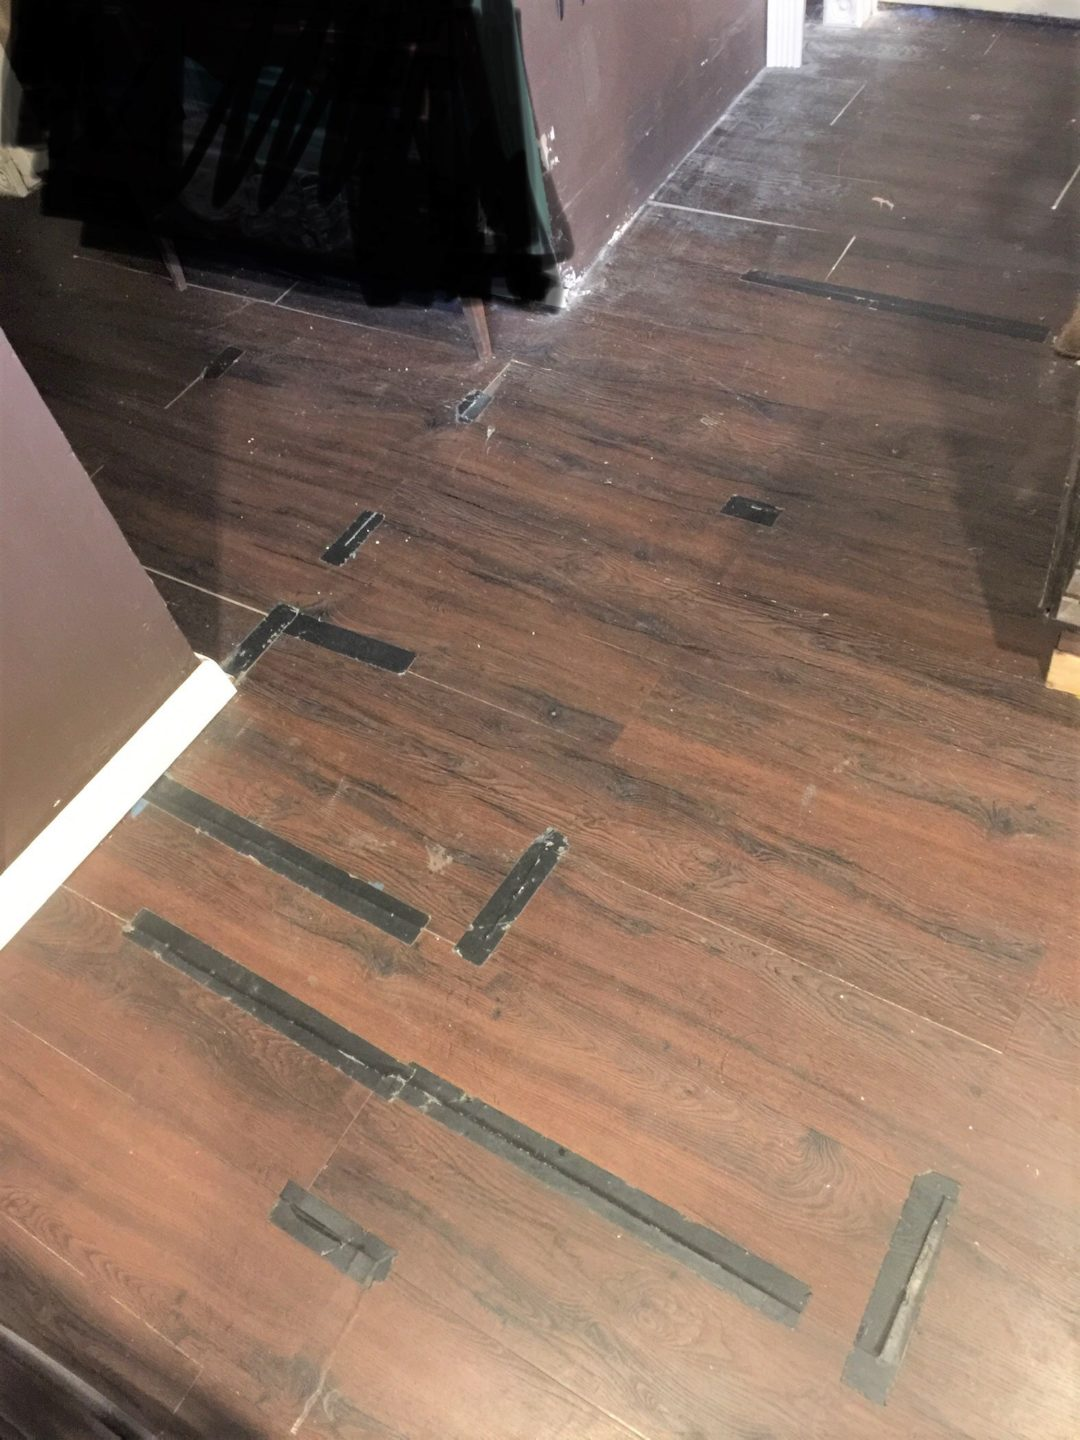 The Black Tape Blends Right In, Right? ugly floor contest entry photo